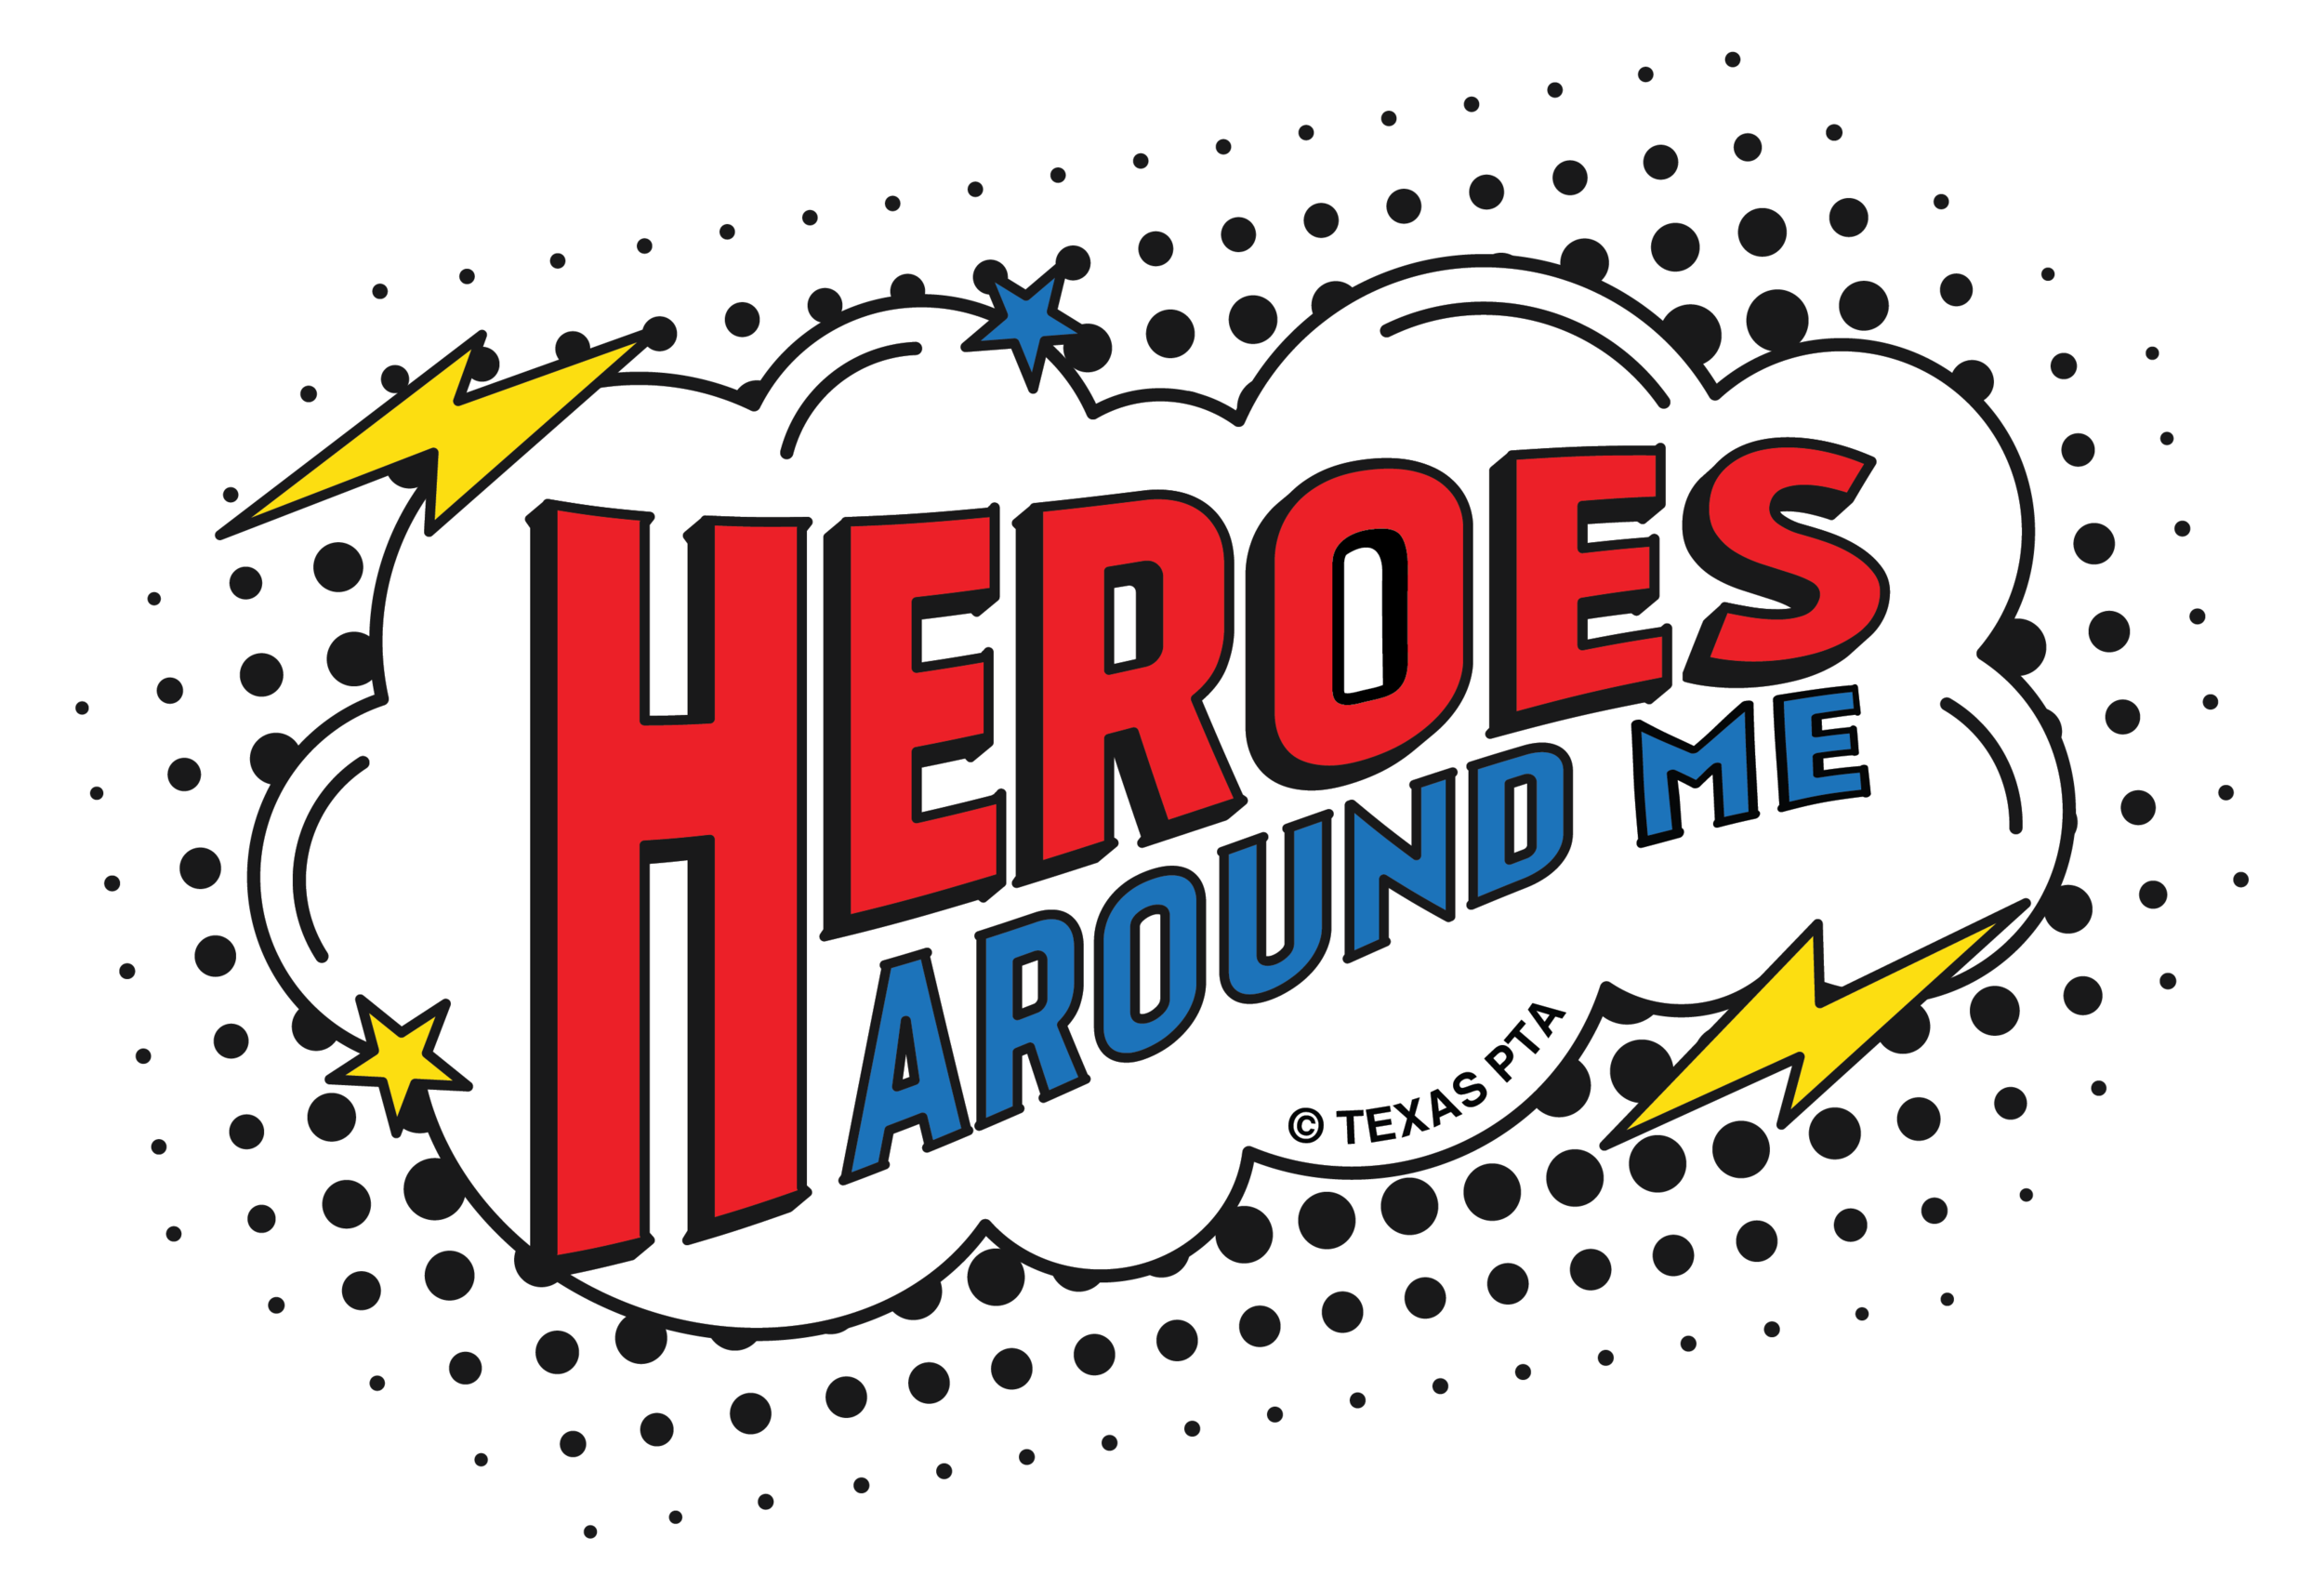 Heroes Around Me Logo (Elements)-01.png